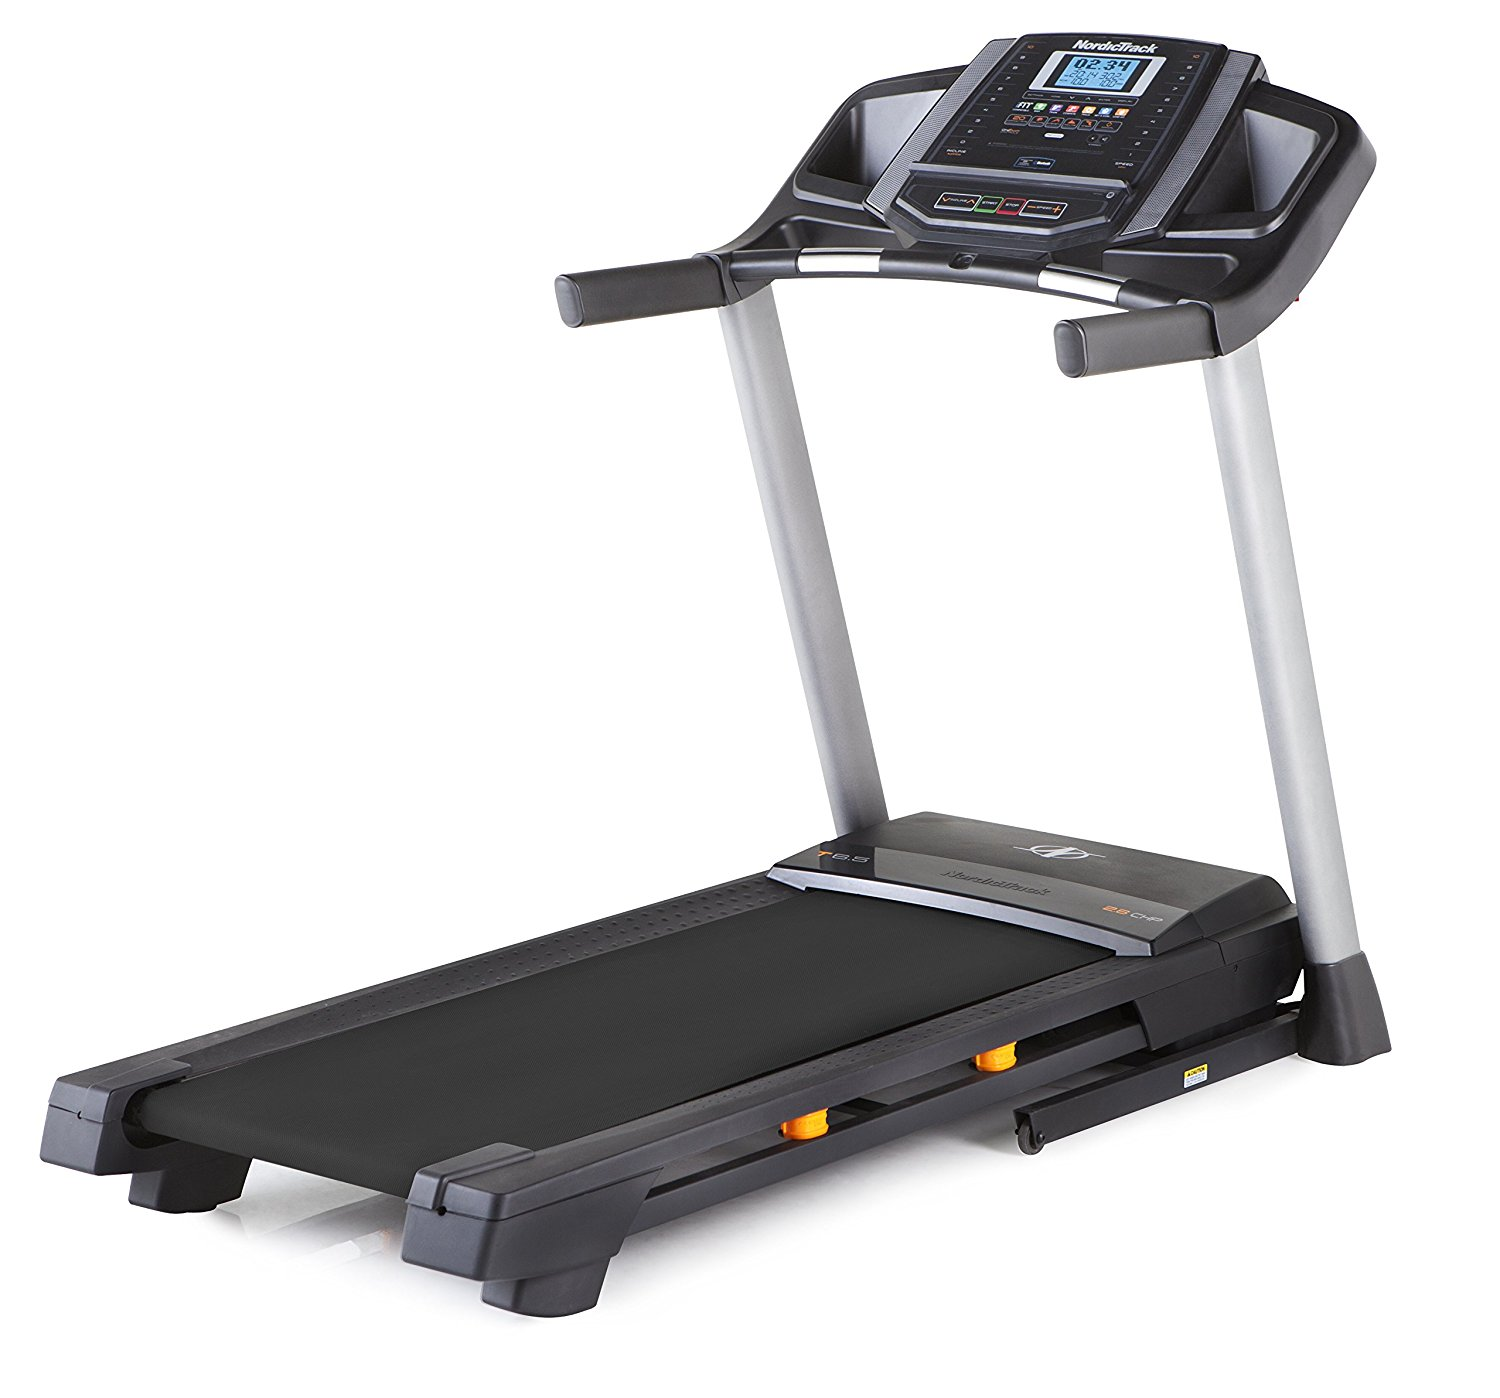 NordicTrack T6.5S Entry Level Treadmill